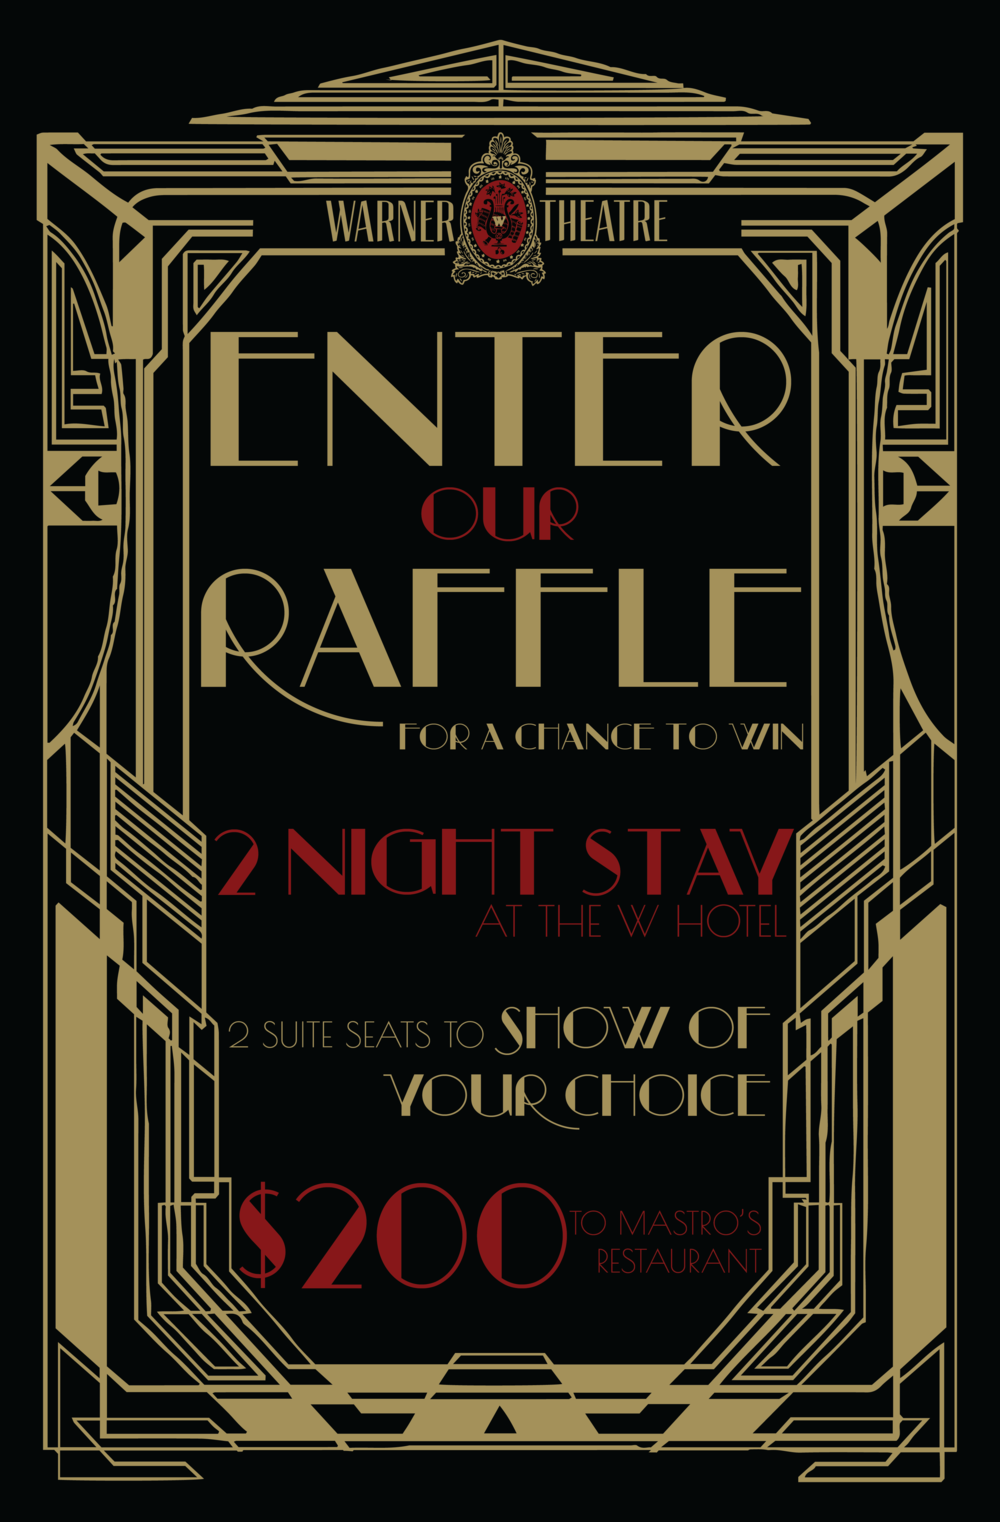 temp6_raffle_updated4-01.png